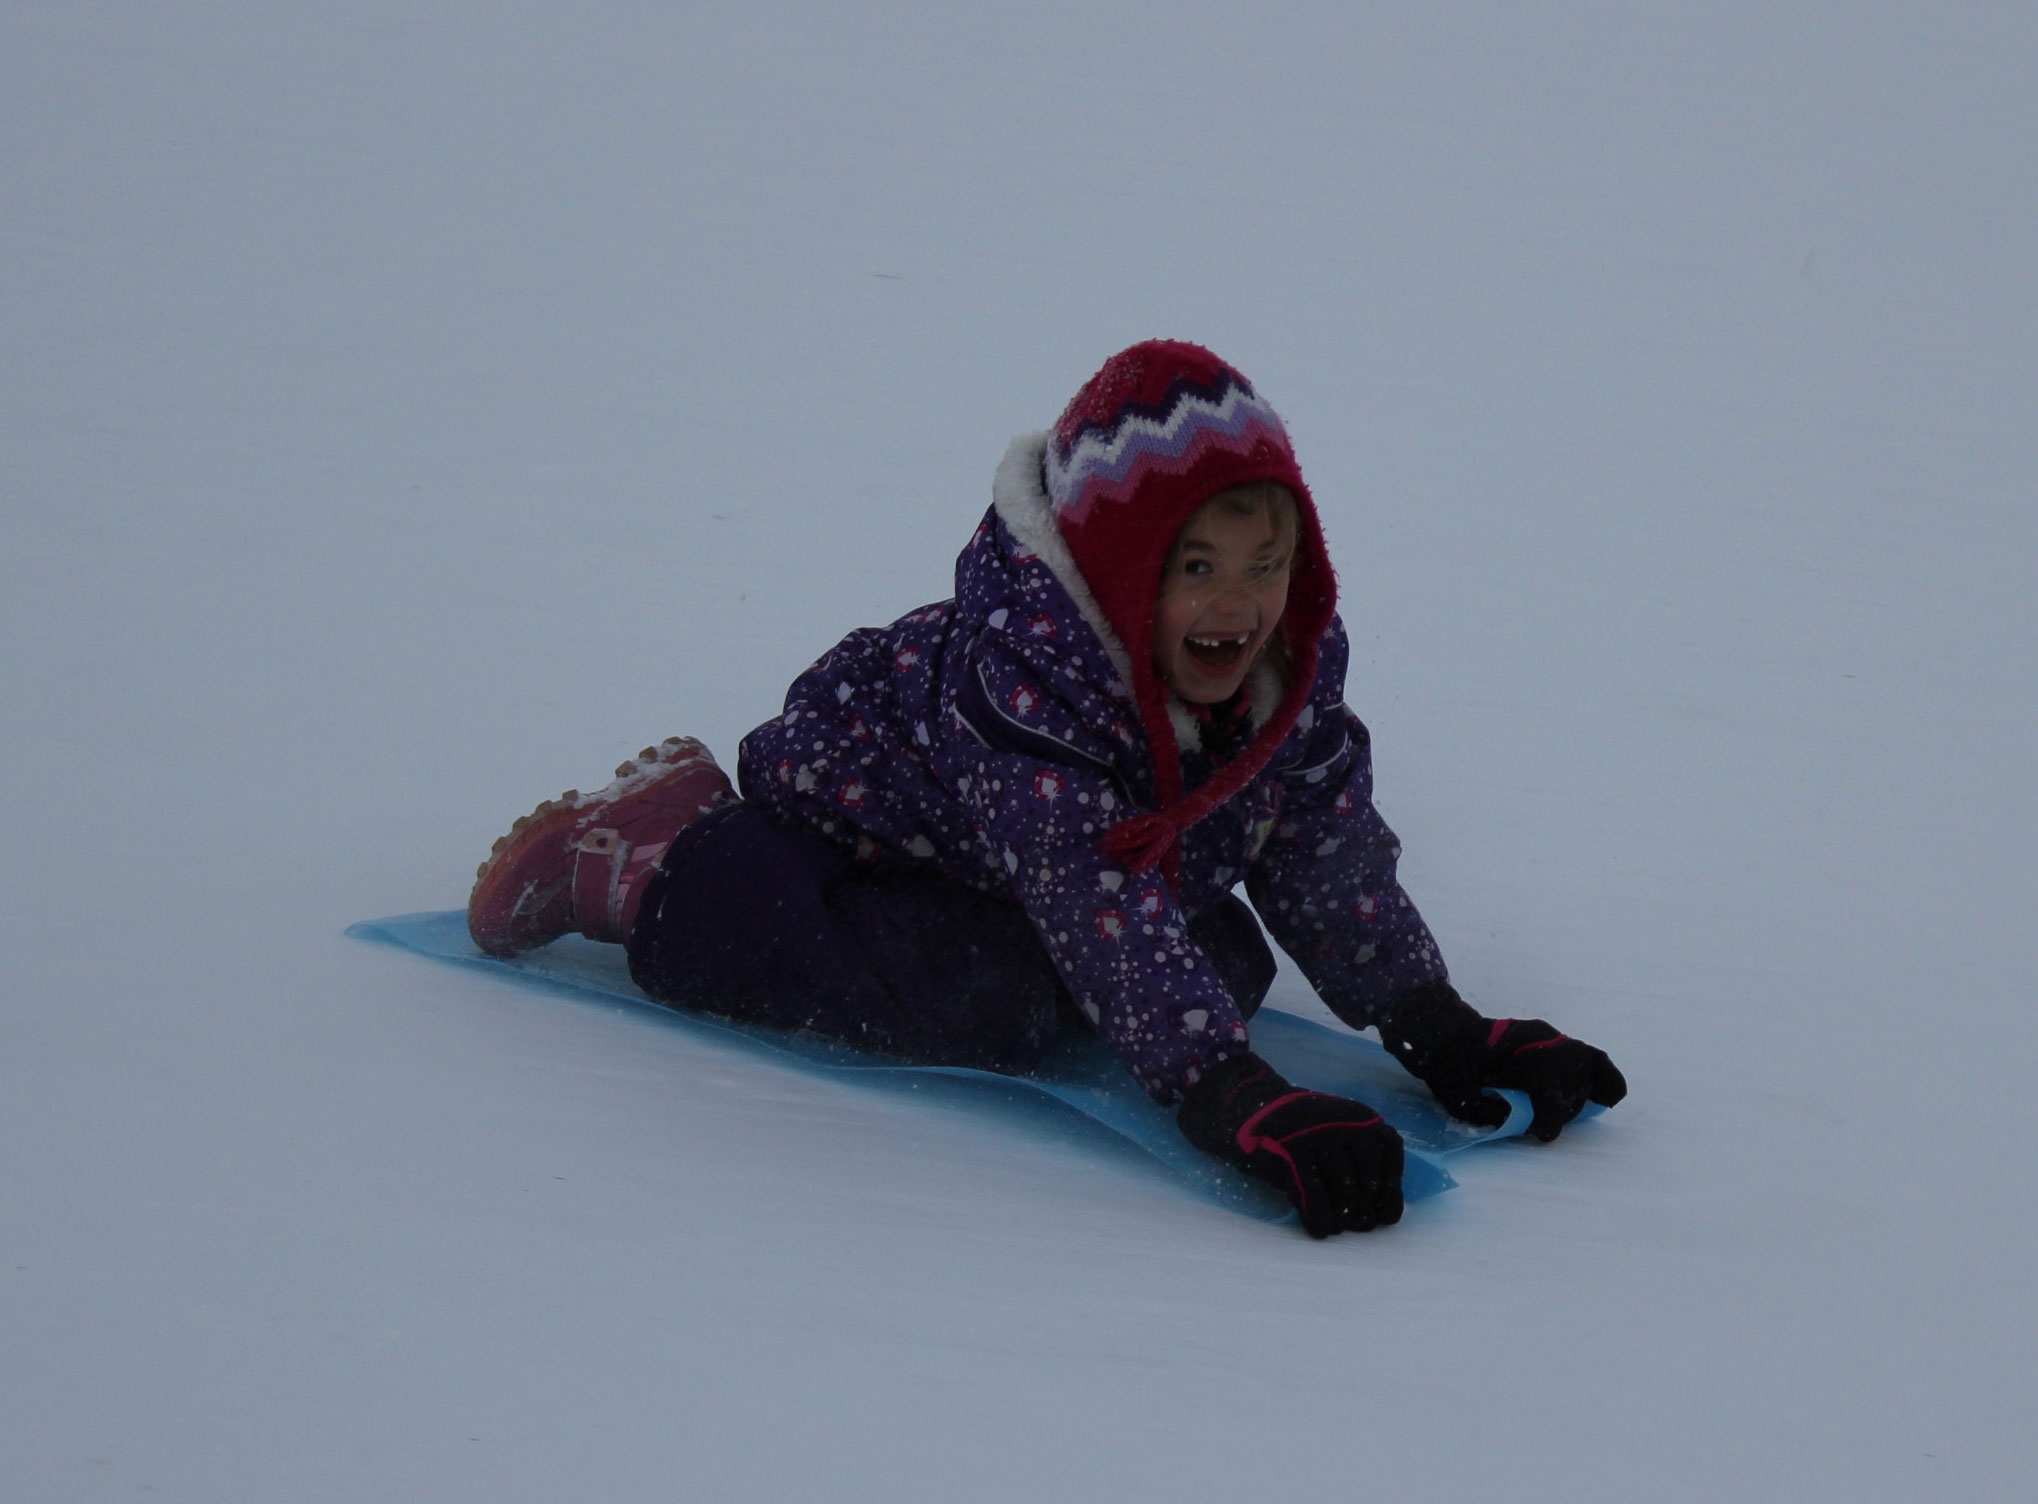 Sledding in Canmore